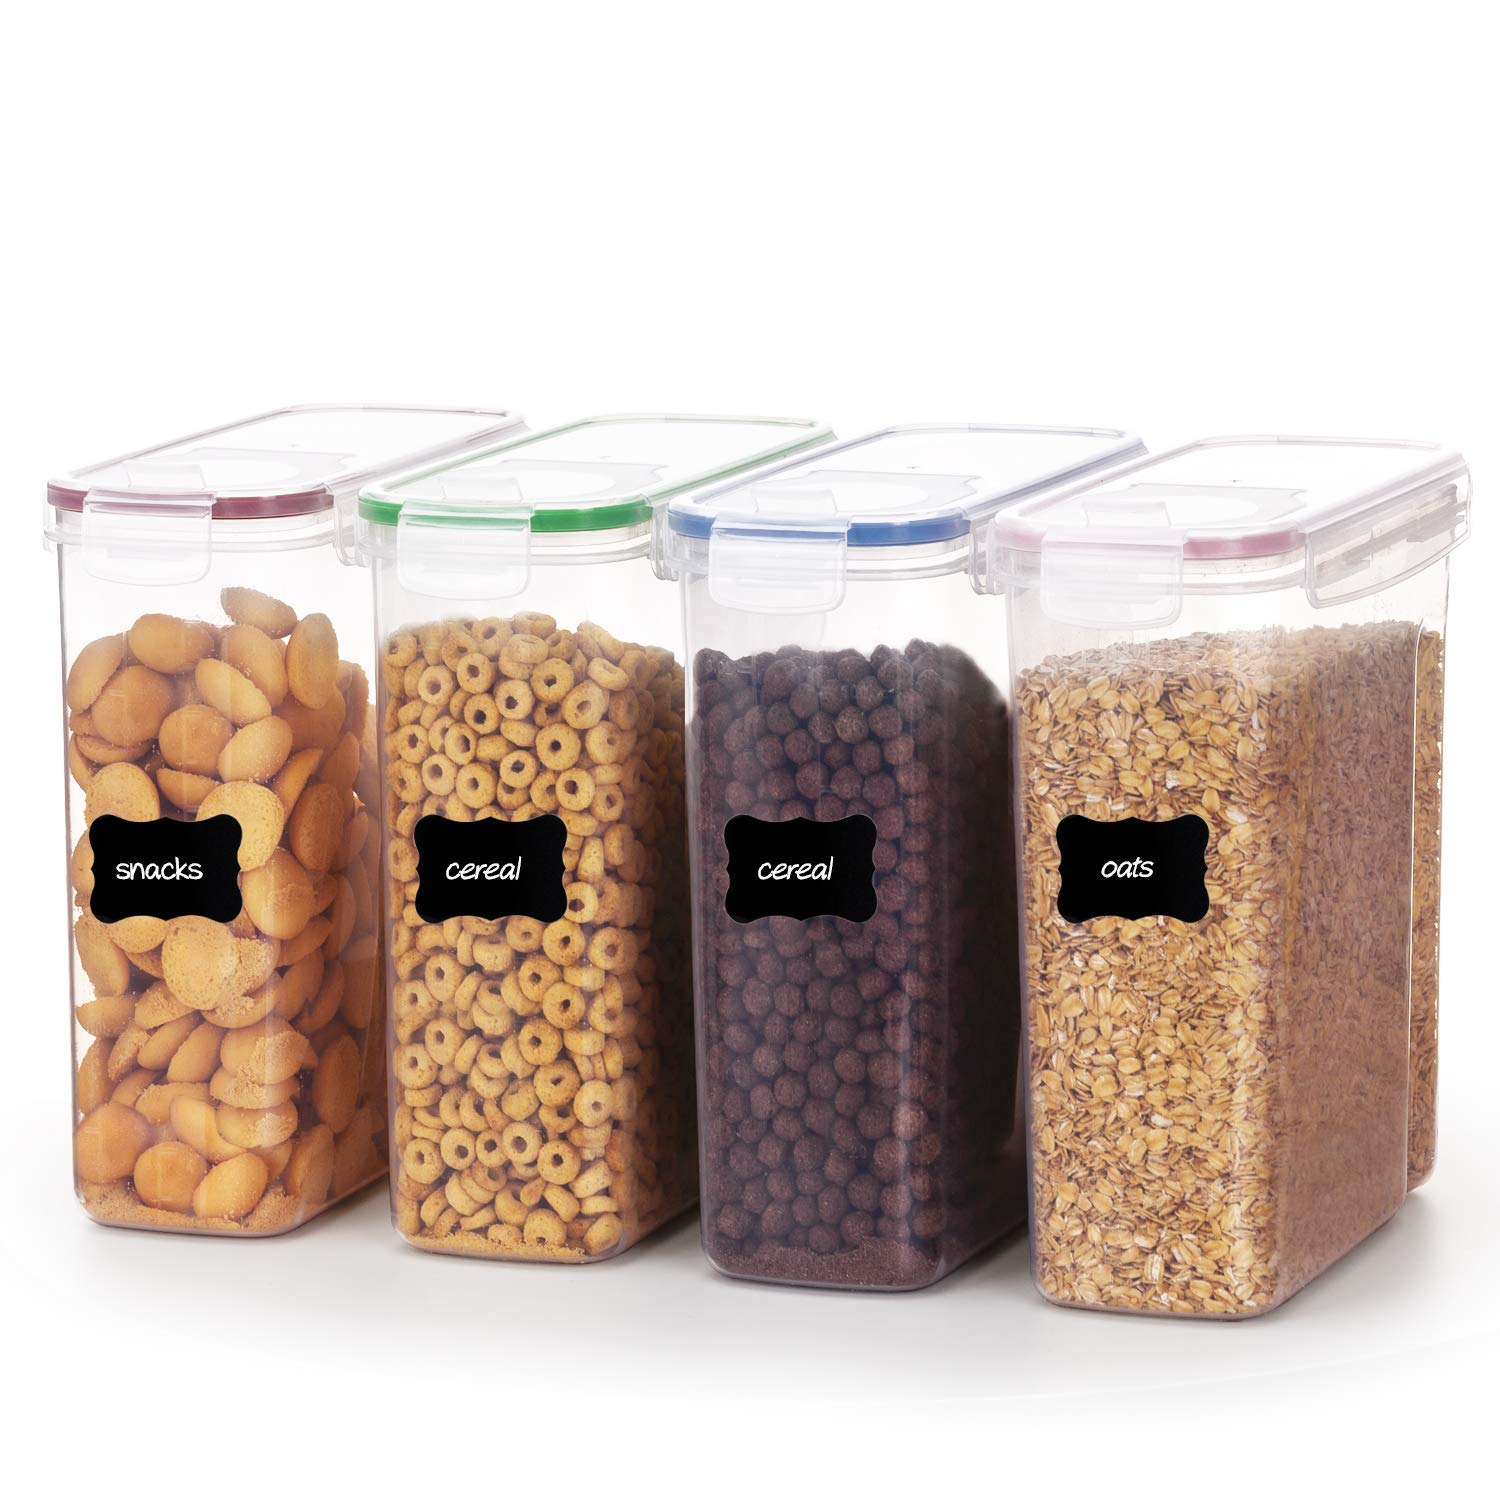 Vtopmart 4L Large Cereal Containers for Storage- Plastic BPA Free Kitchen Pantry Storage Containers,Set of 4